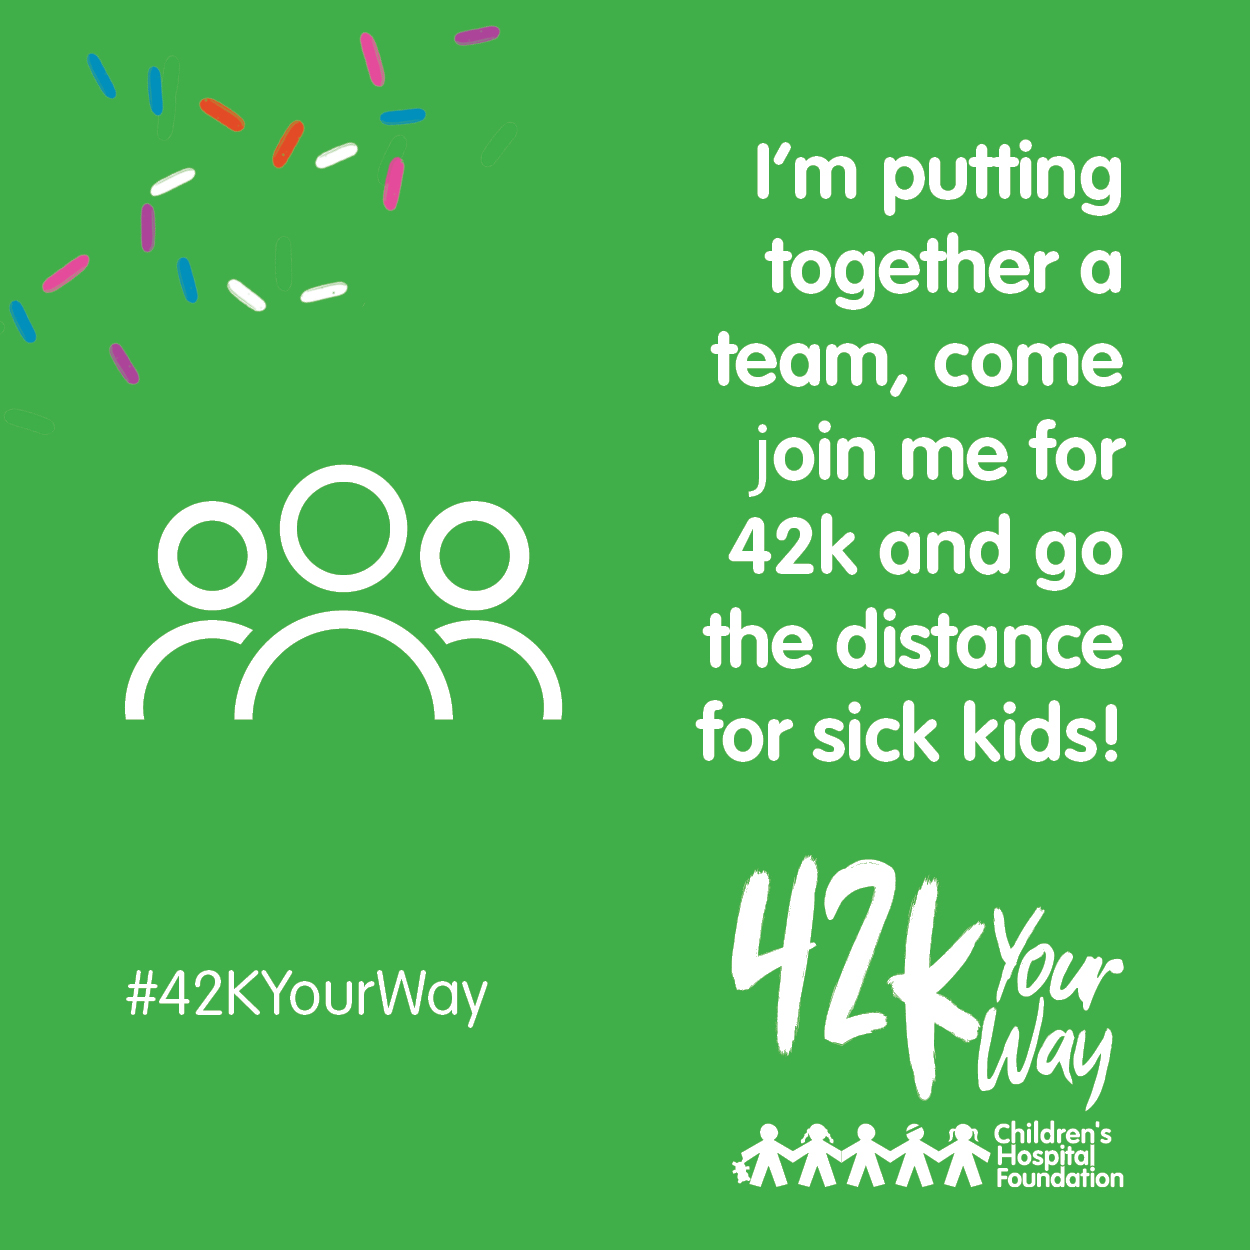 42k Your Way - Join my team